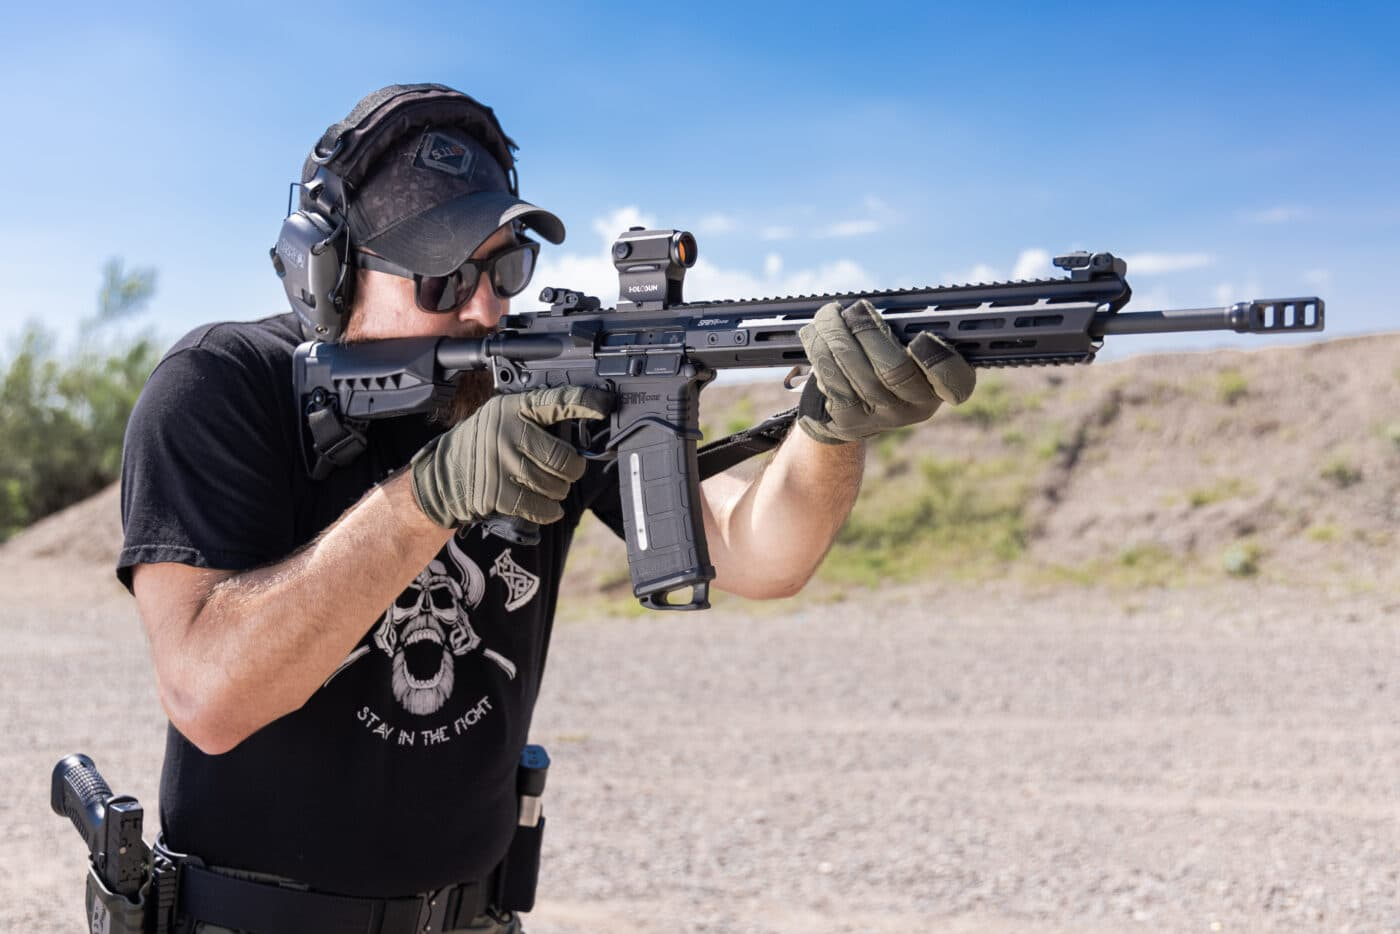 Man testing different color reticles at the range with SAINT rifle